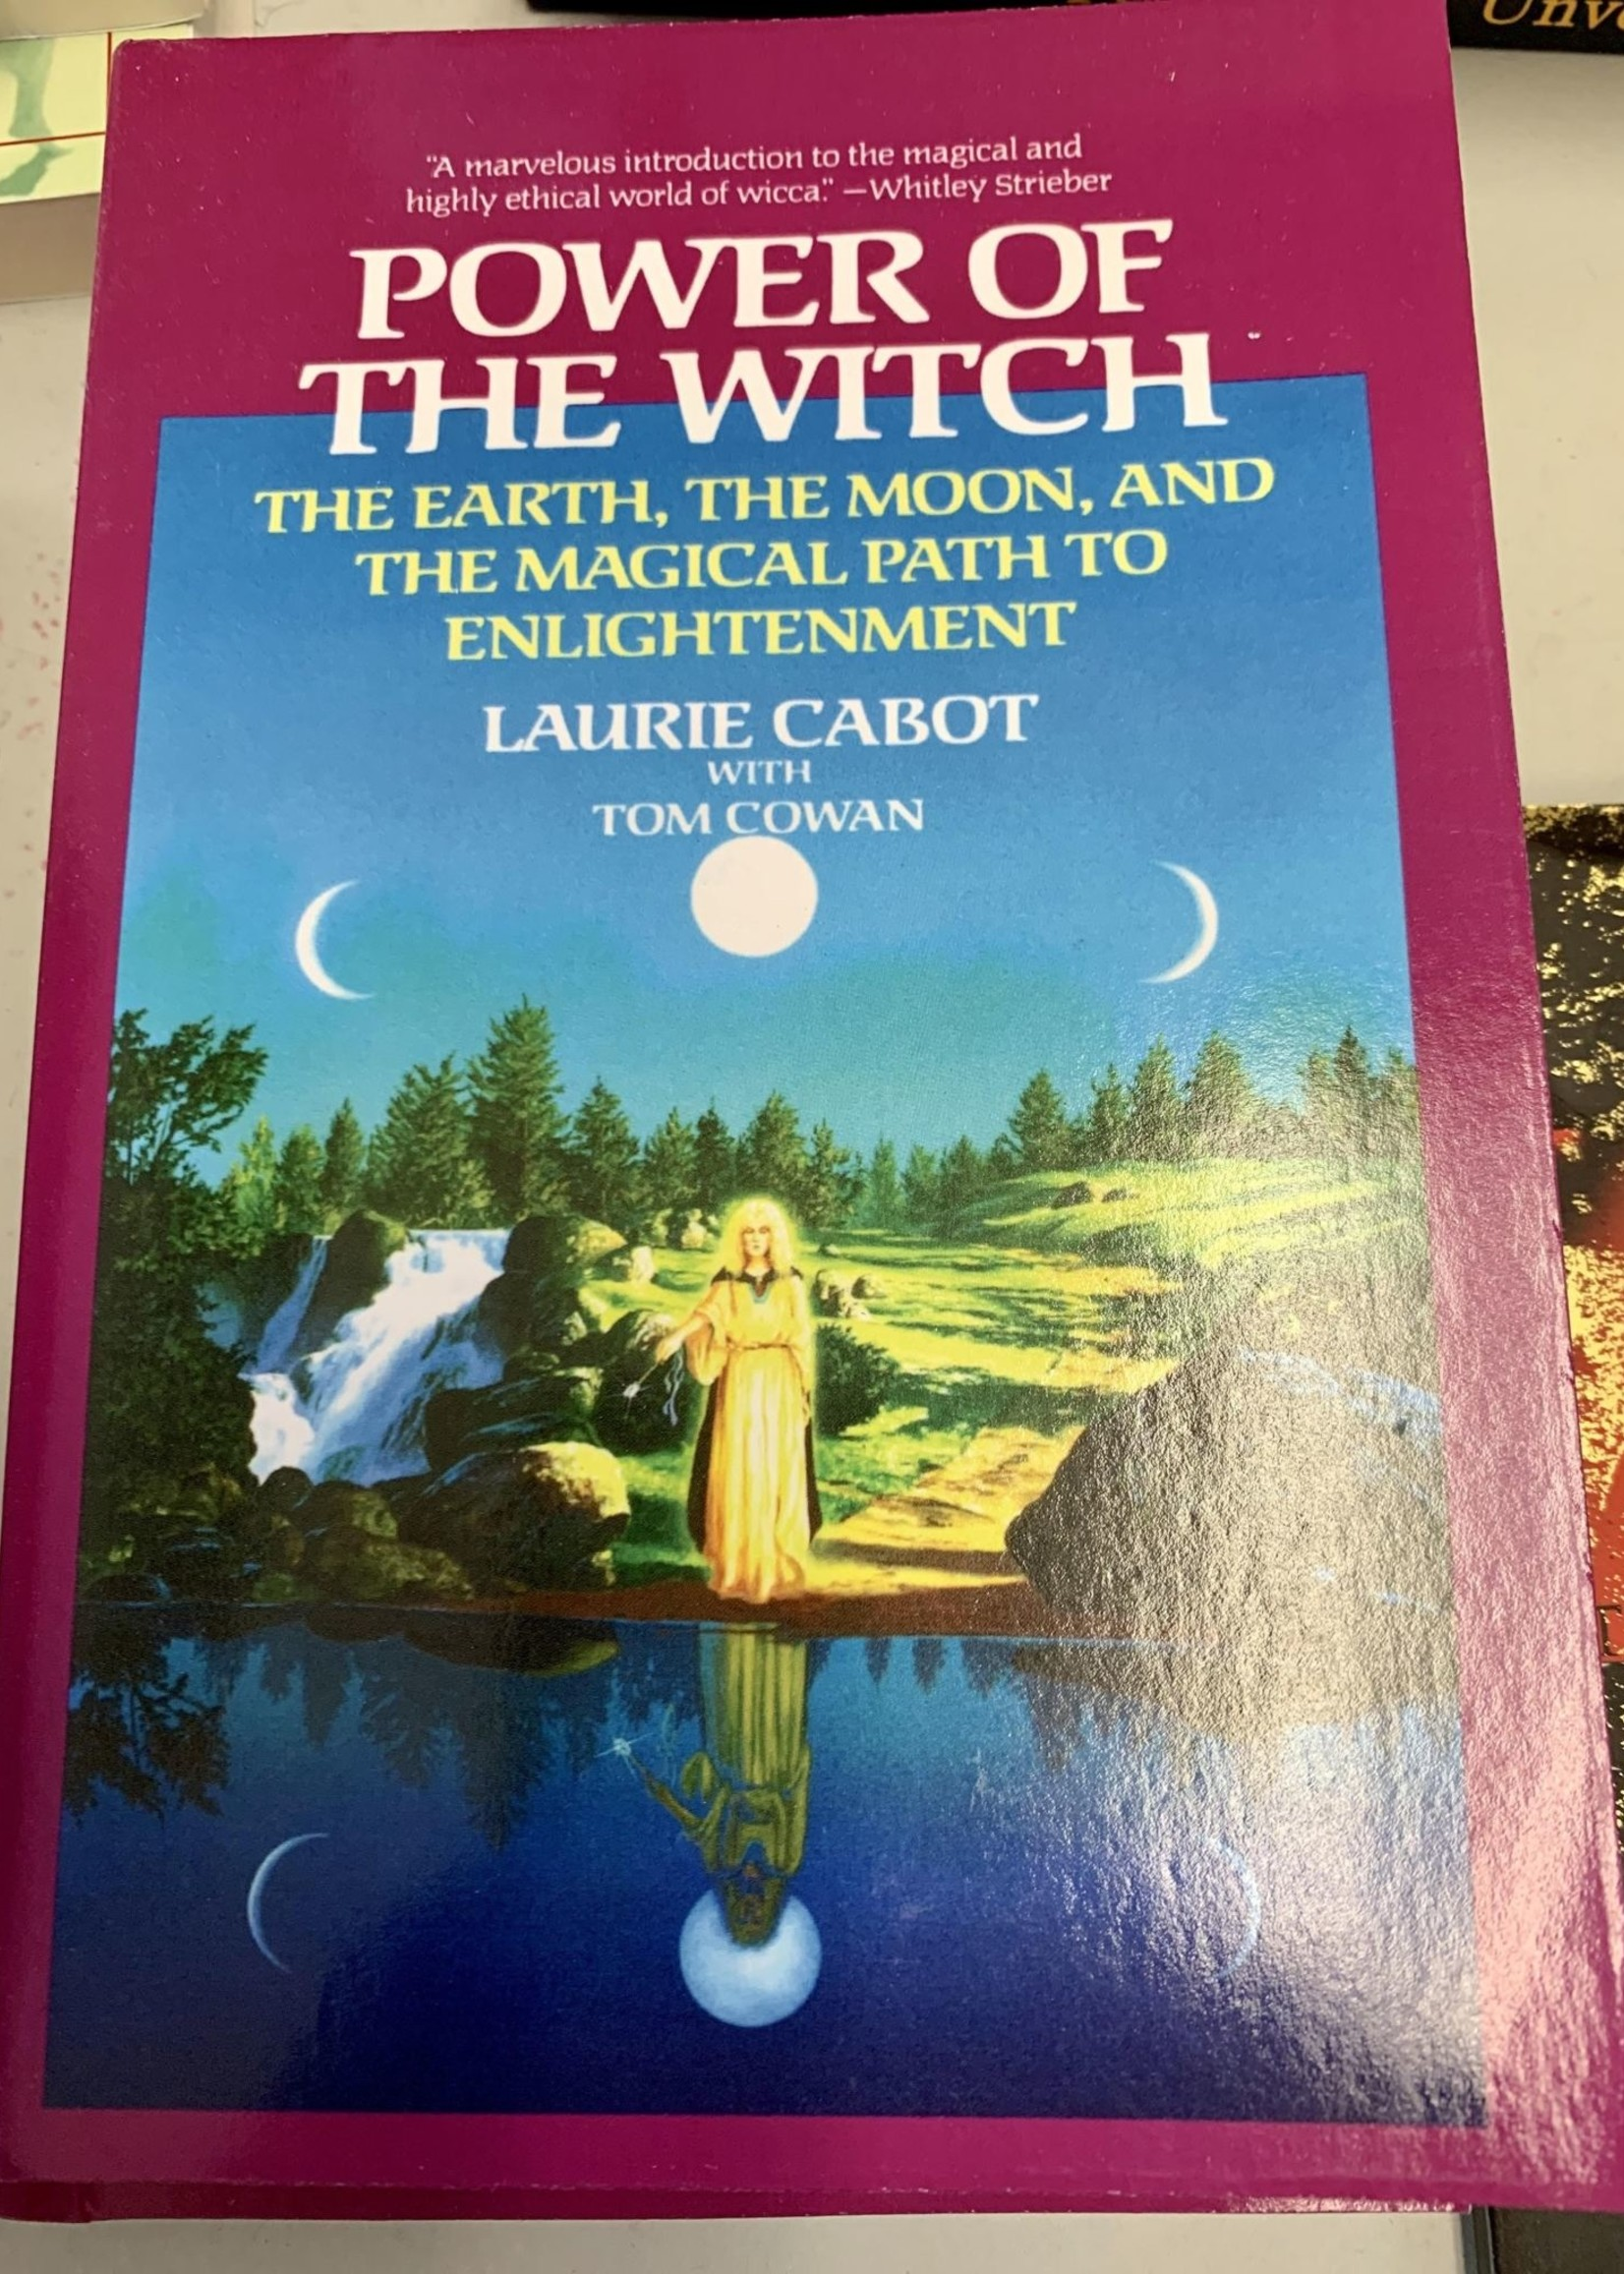 Power of the Witch THE EARTH, THE MOON, AND THE MAGICAL PATH TO ENLIGHTENMENT - By LAURIE CABOT and TOM COWAN